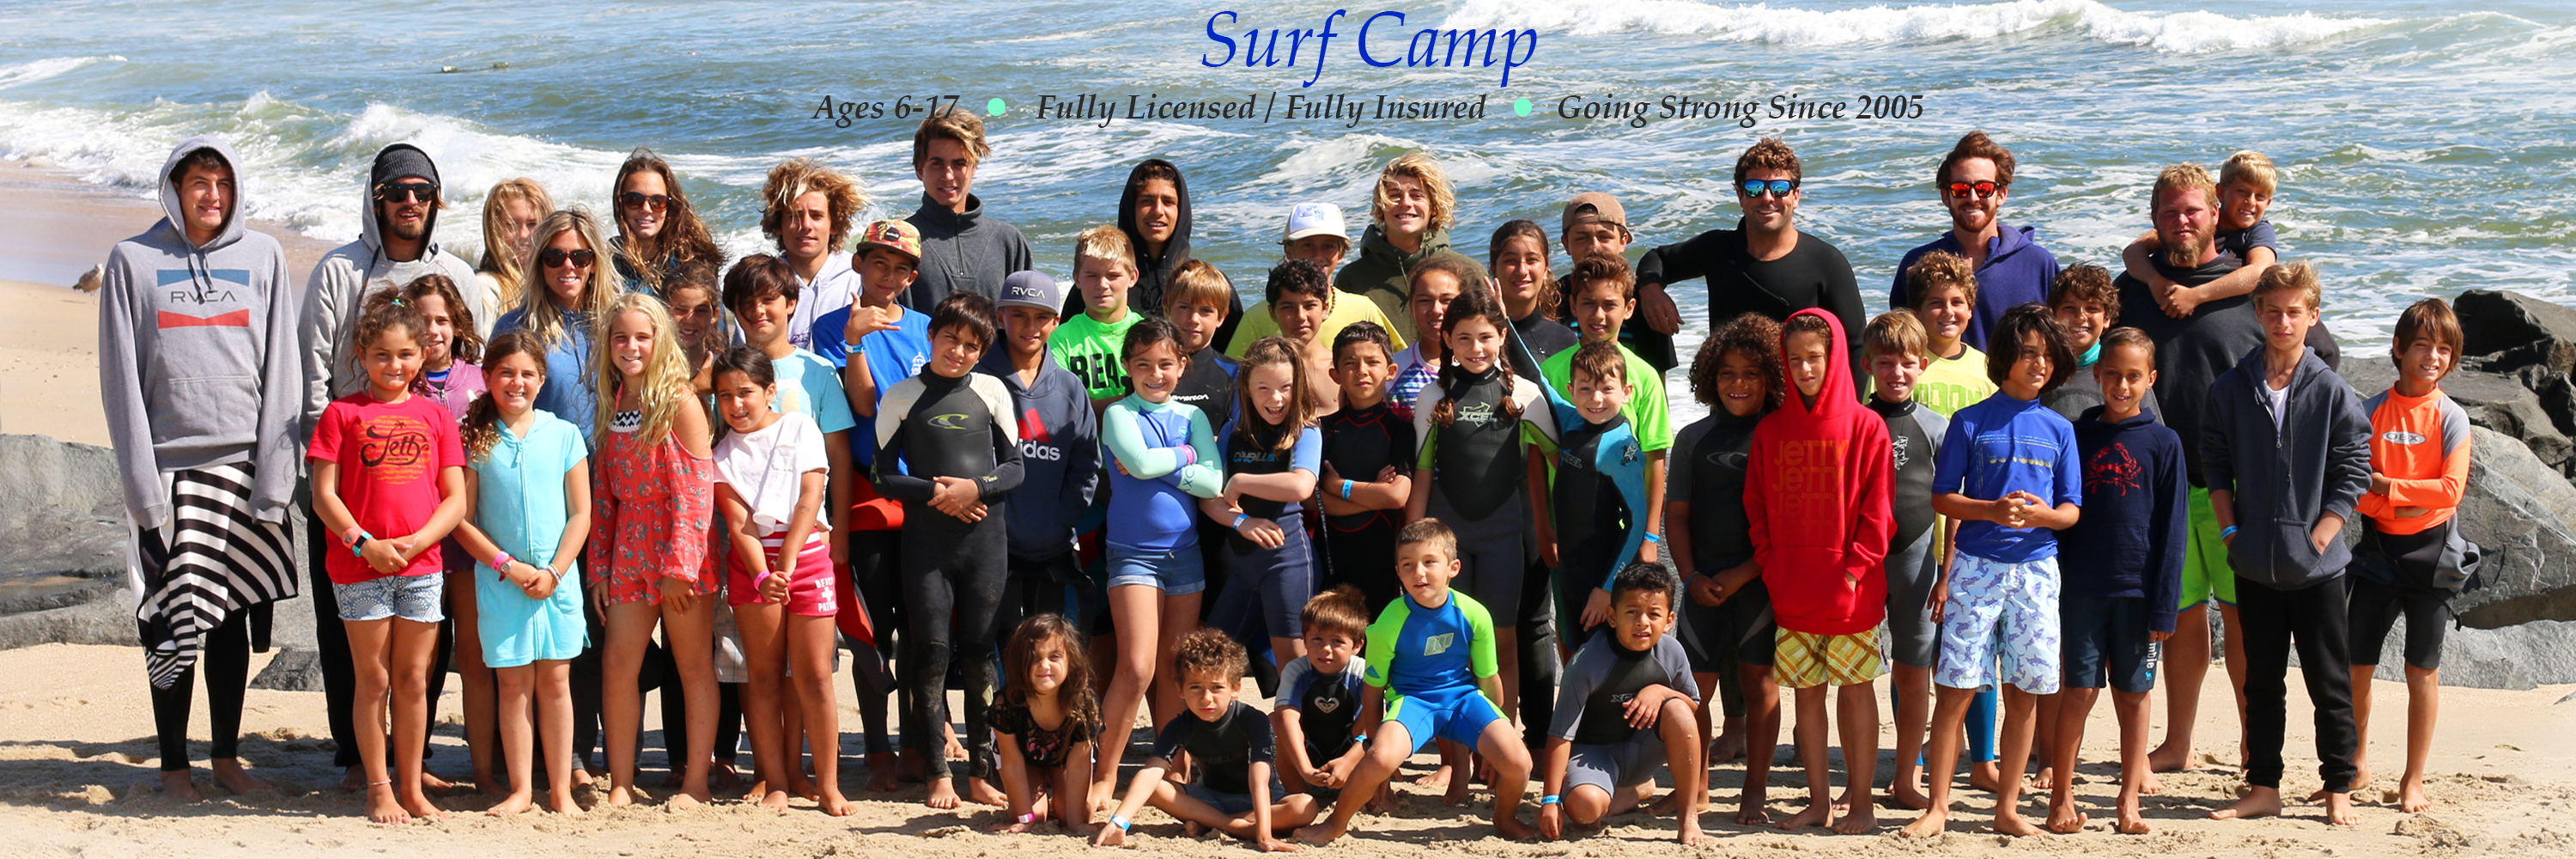 New Jersey Surf Camp